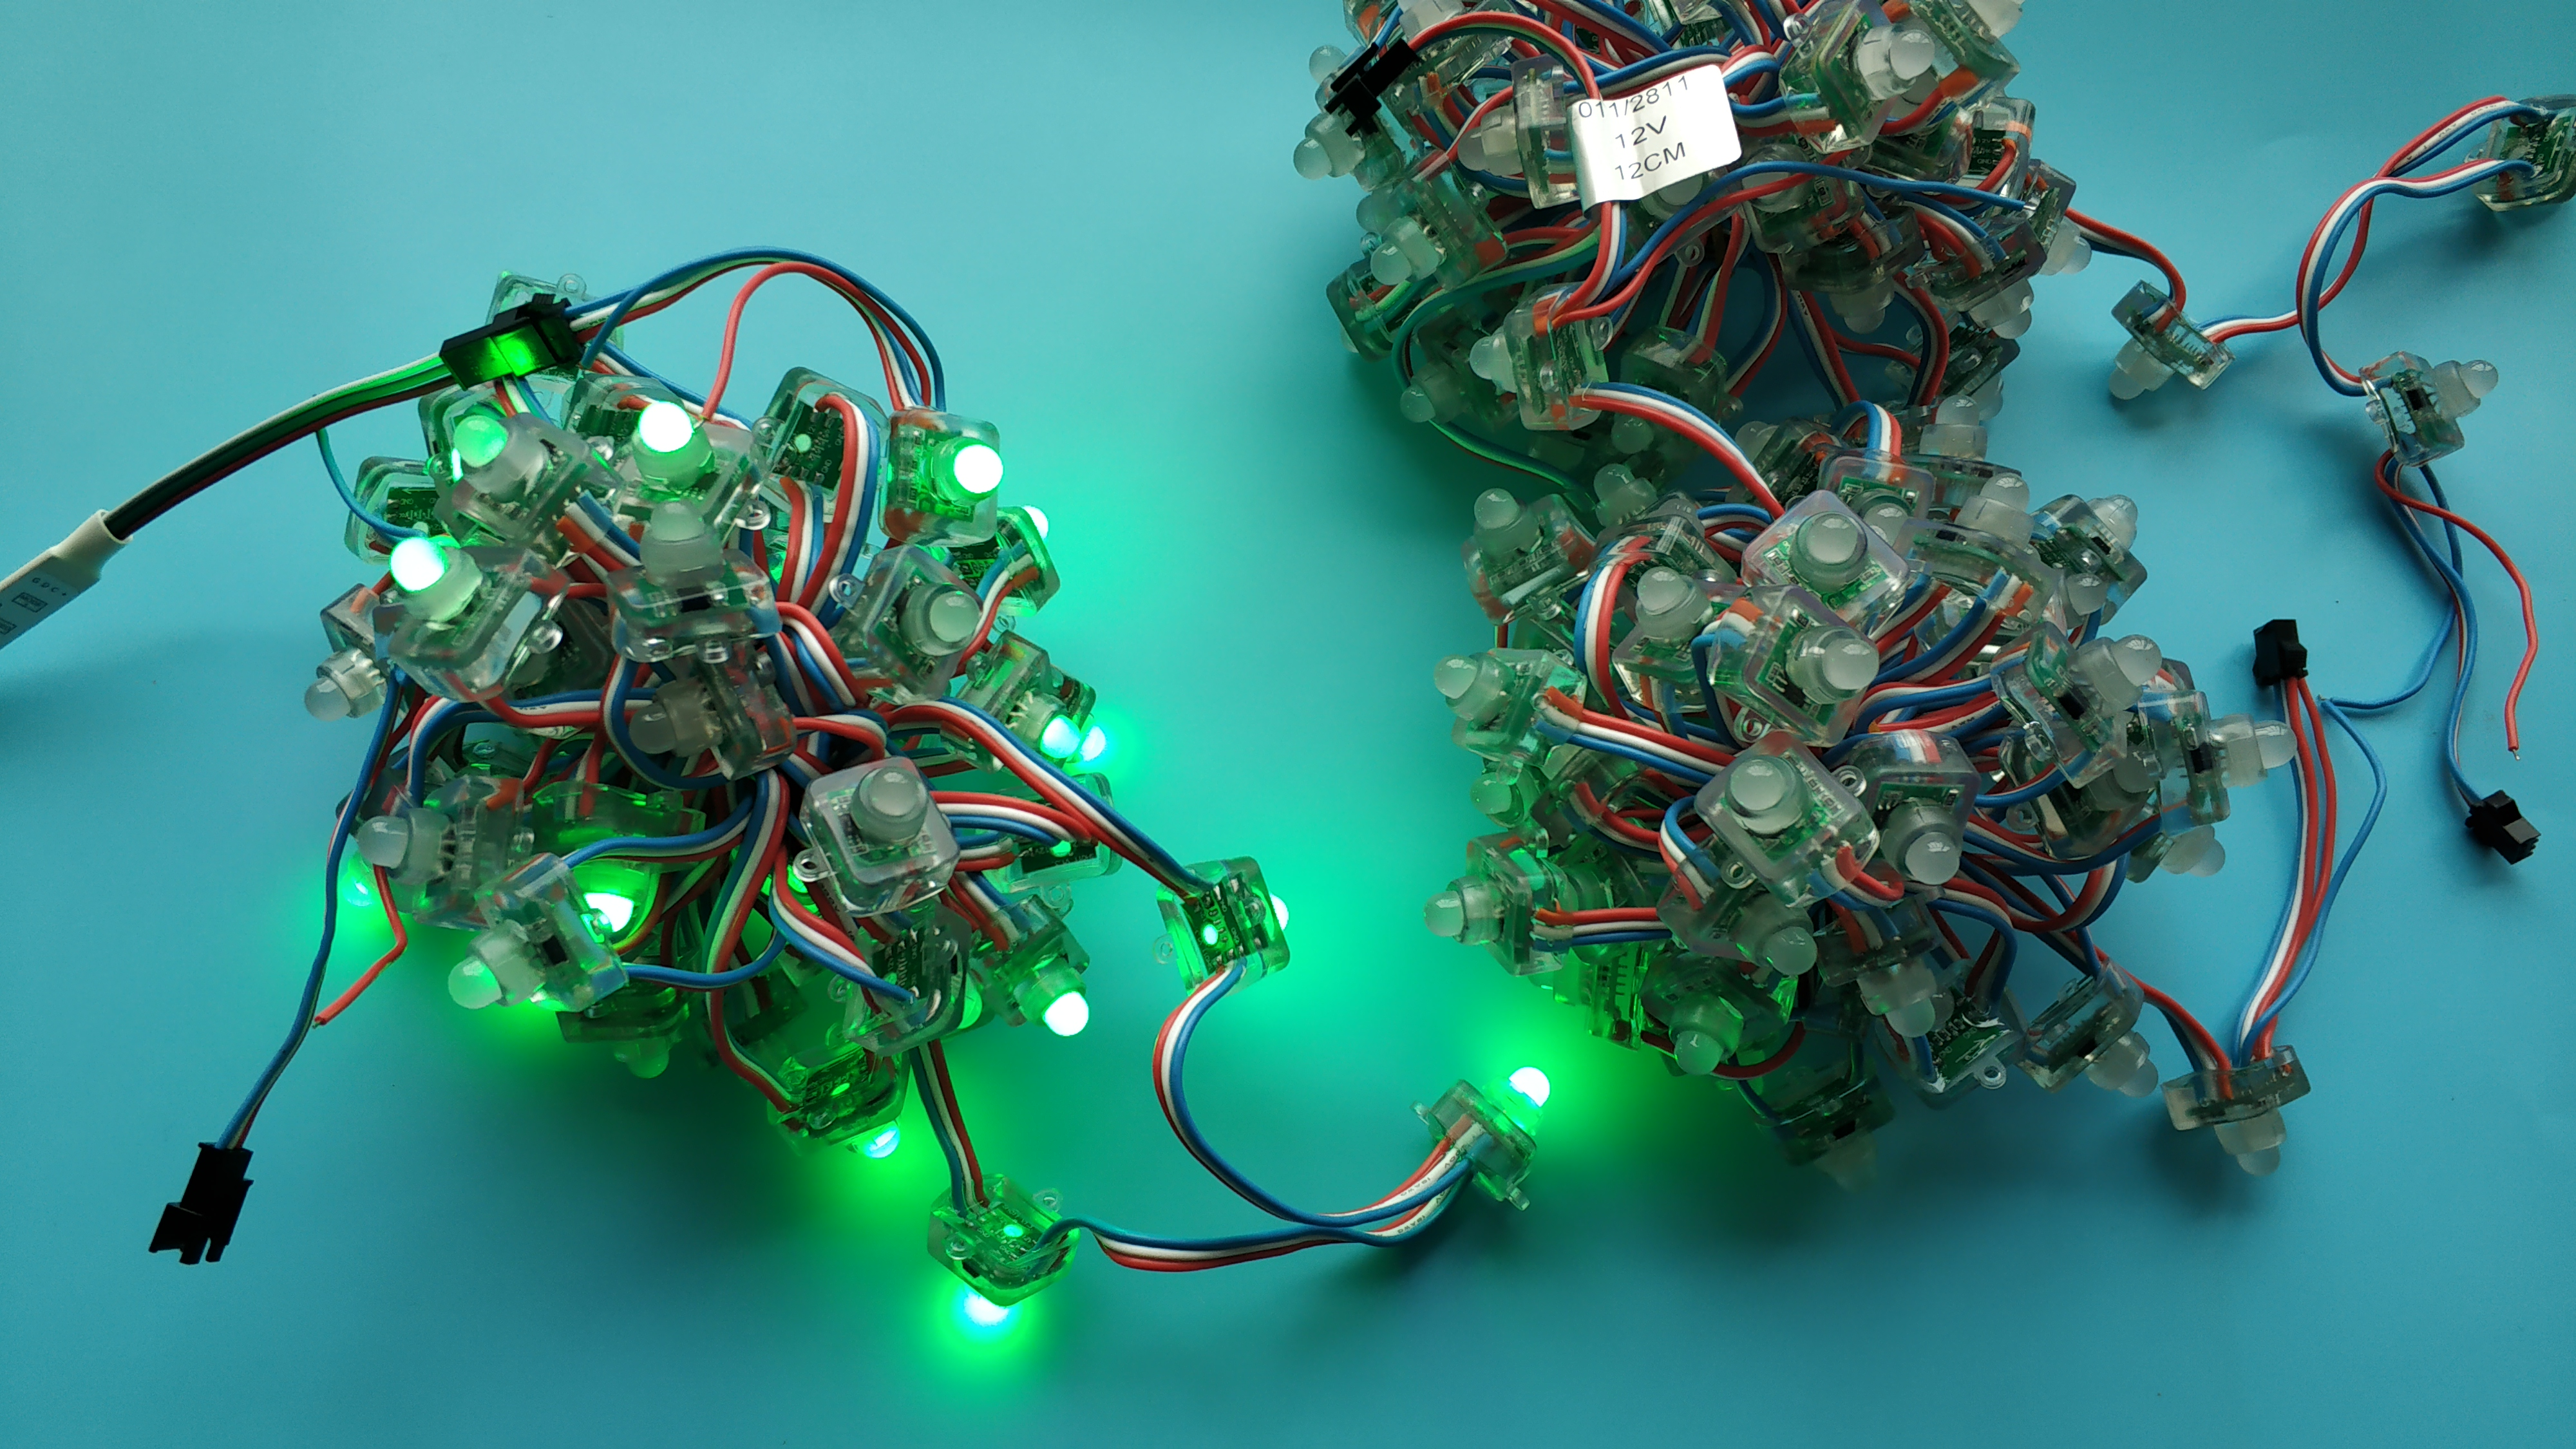 12V waterproof WS2811 RGB LED pixel node string